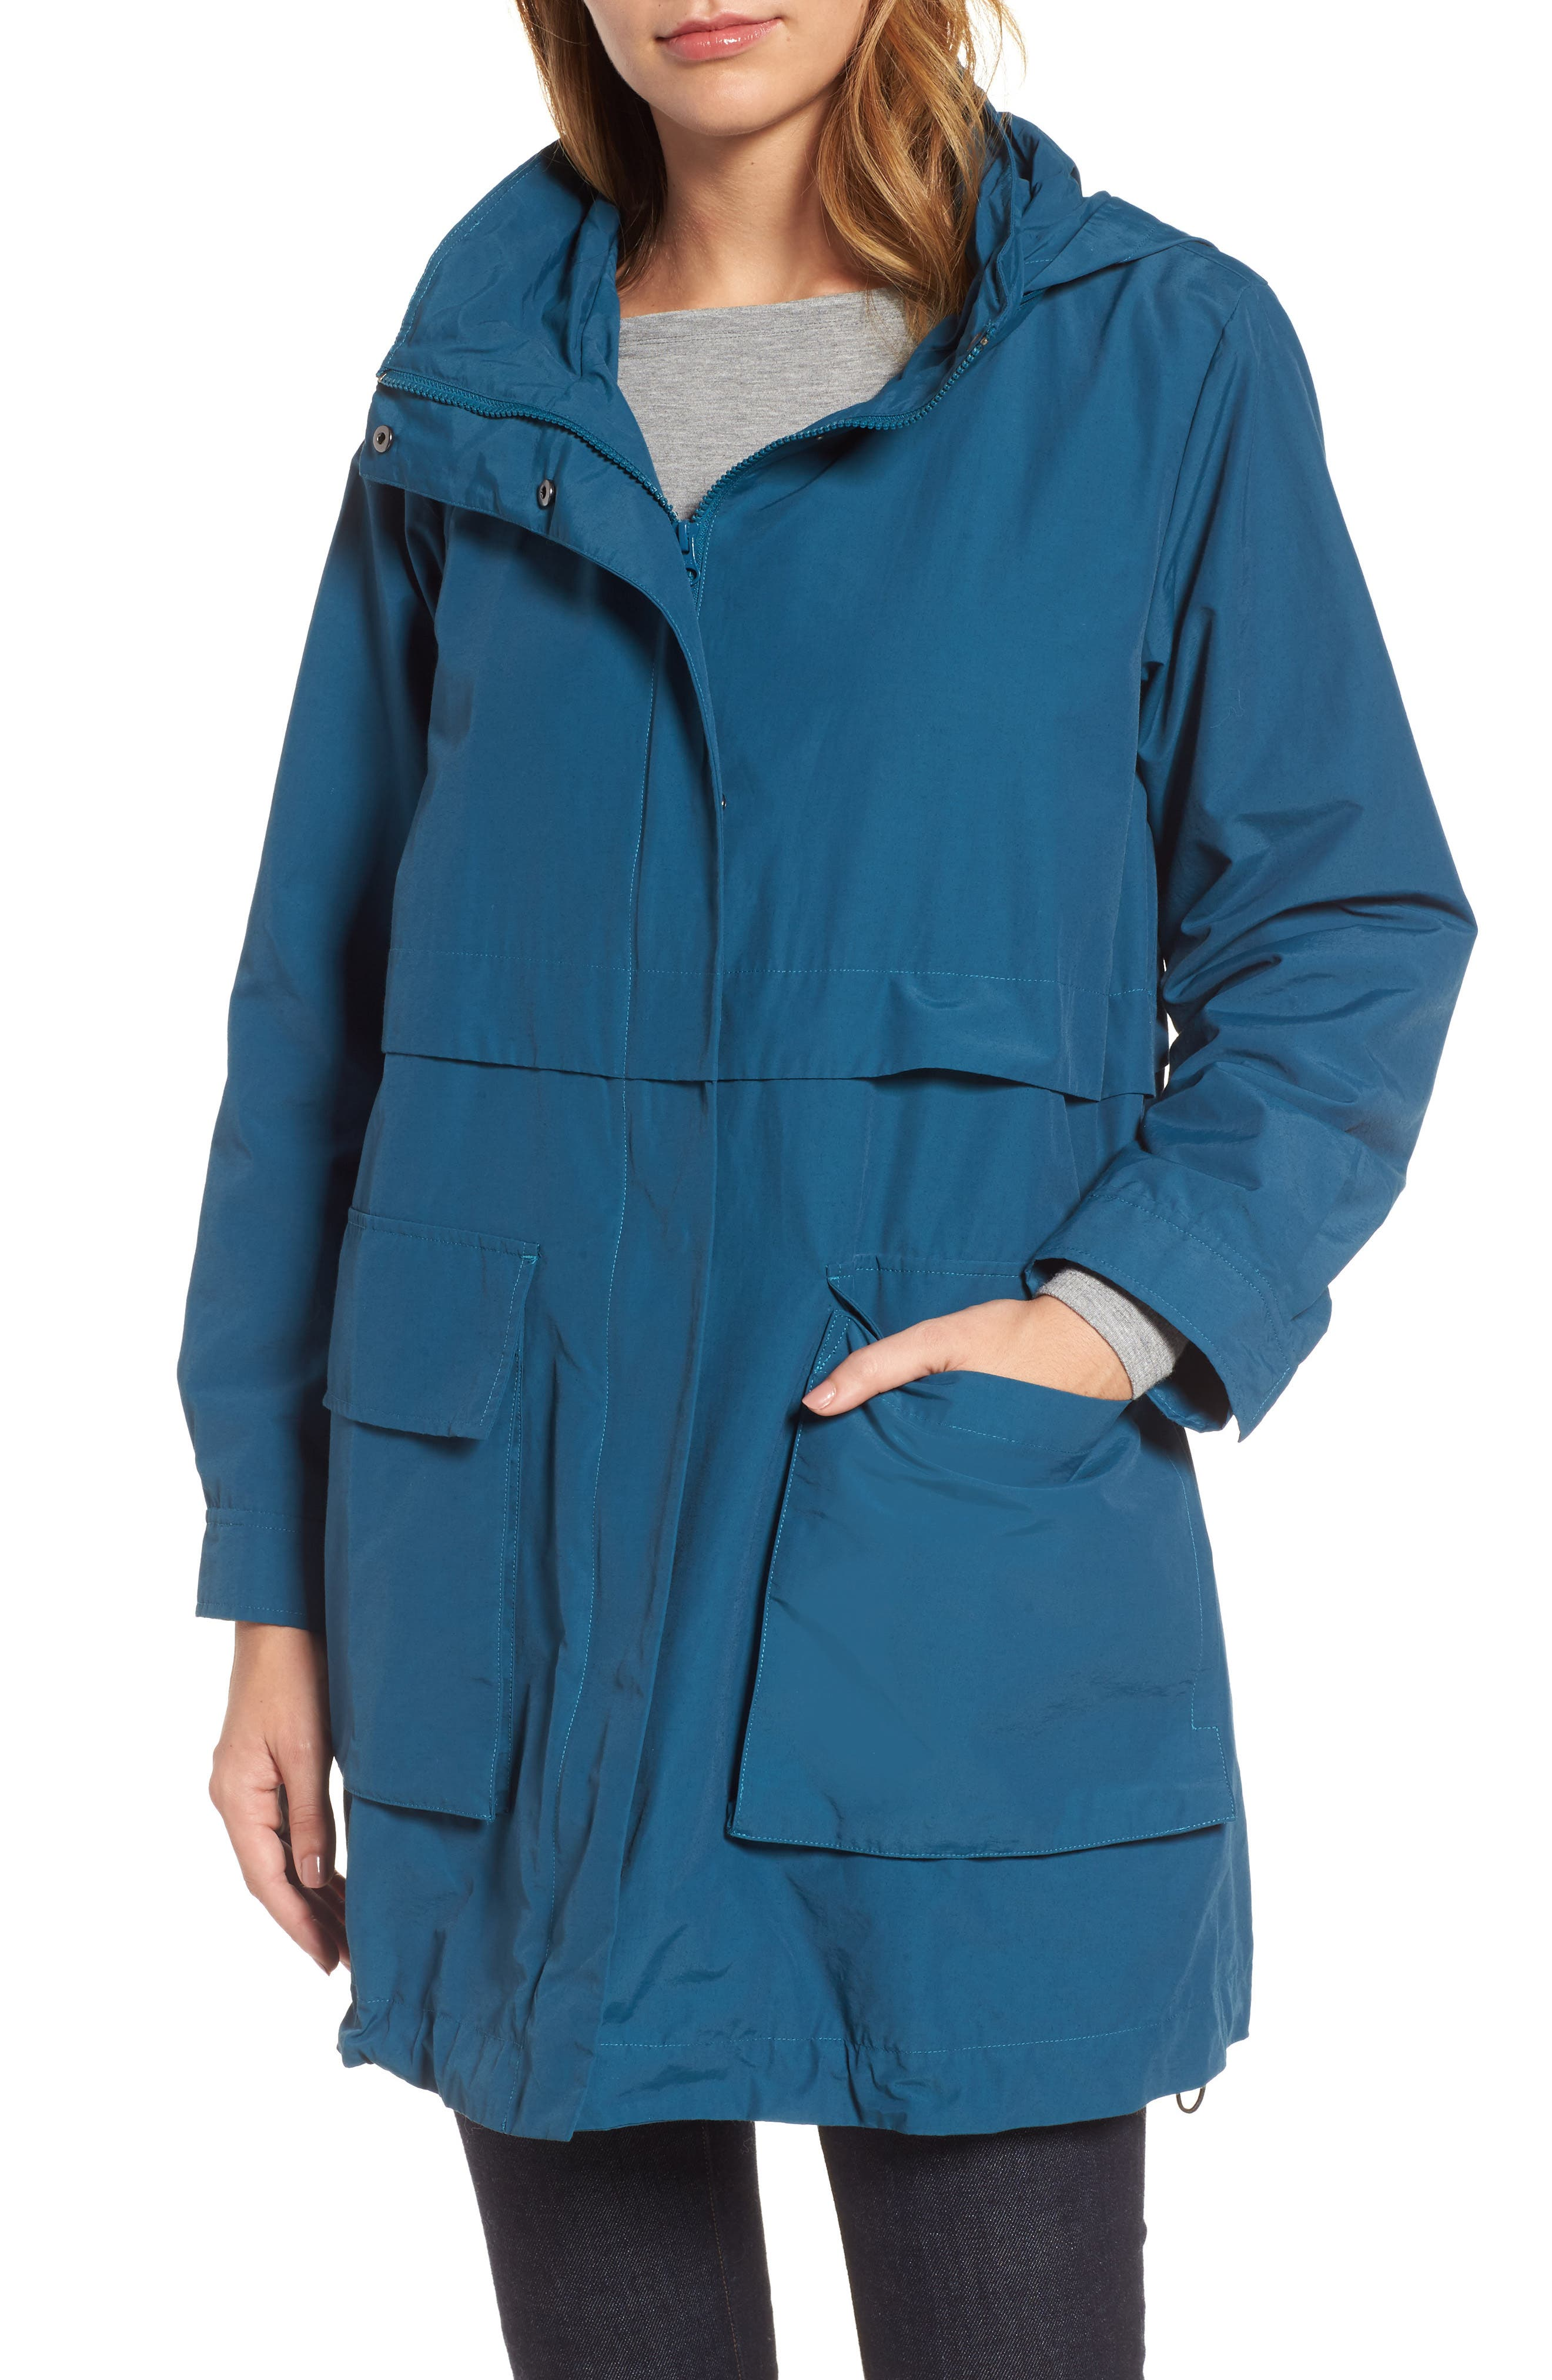 Hooded Utility Jacket,                             Main thumbnail 1, color,                             Blue Spruce